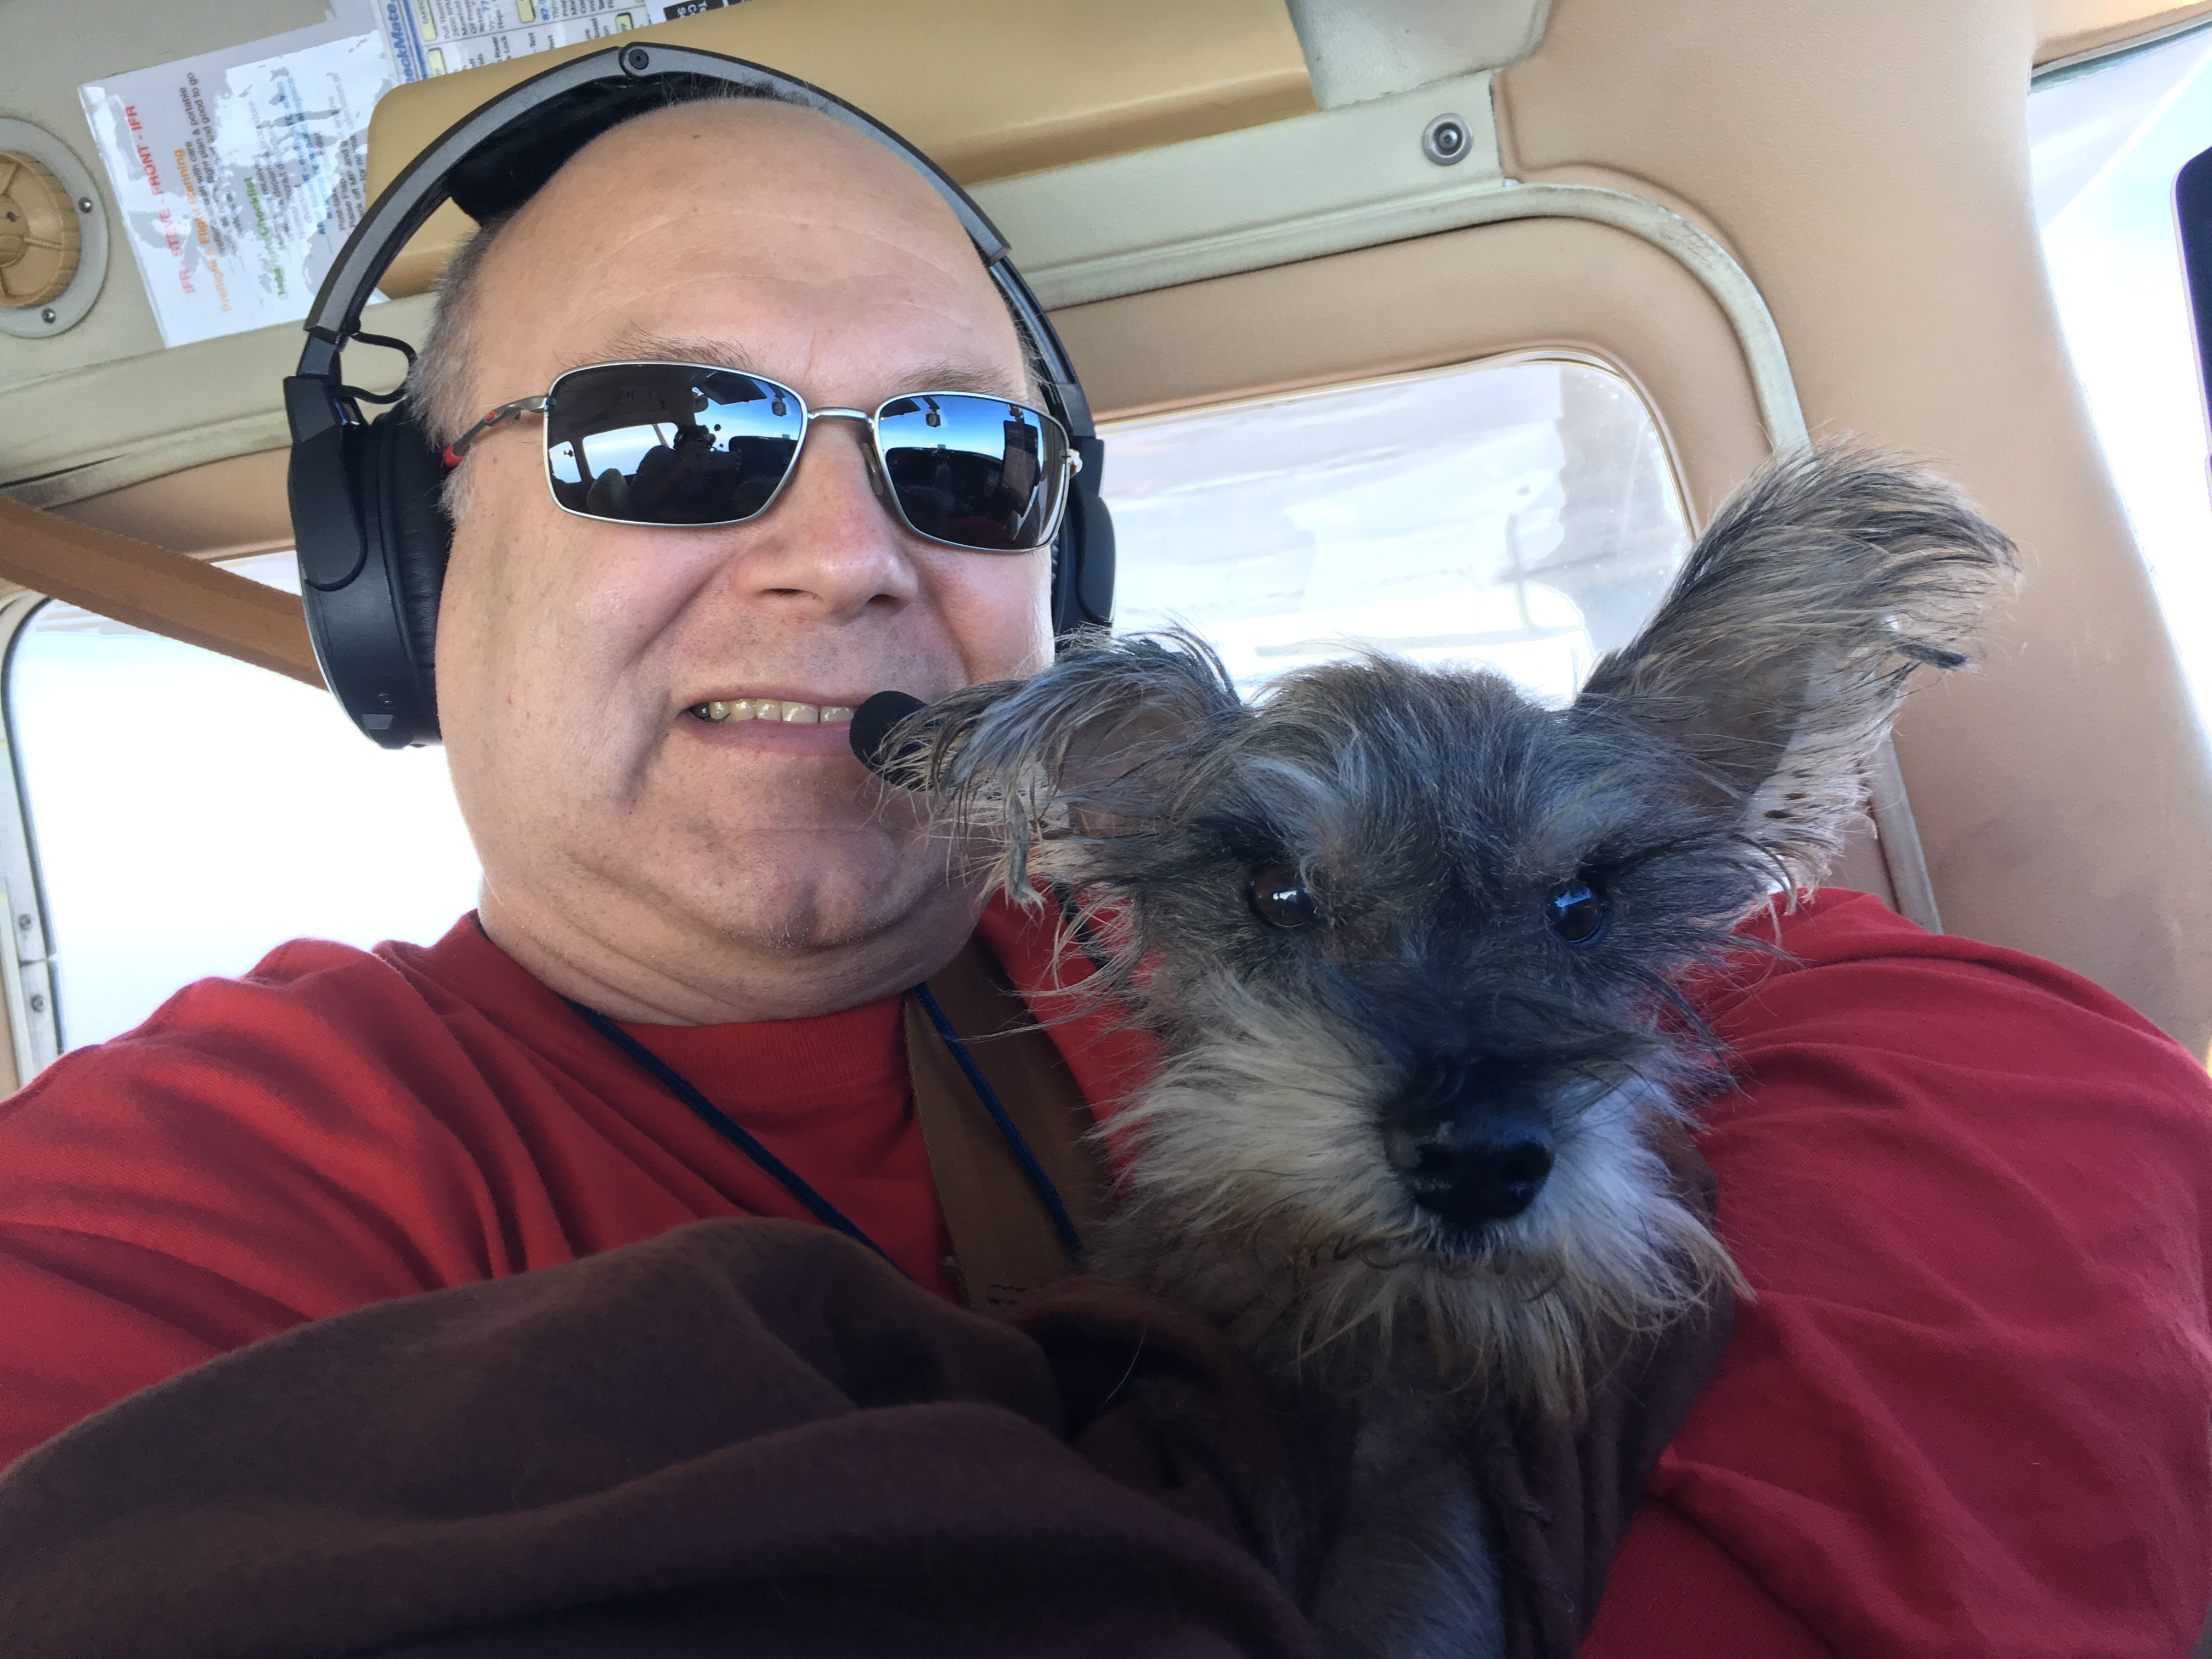 Pilot Dog - Saving the Lives of Dogs, One Flight at a Time